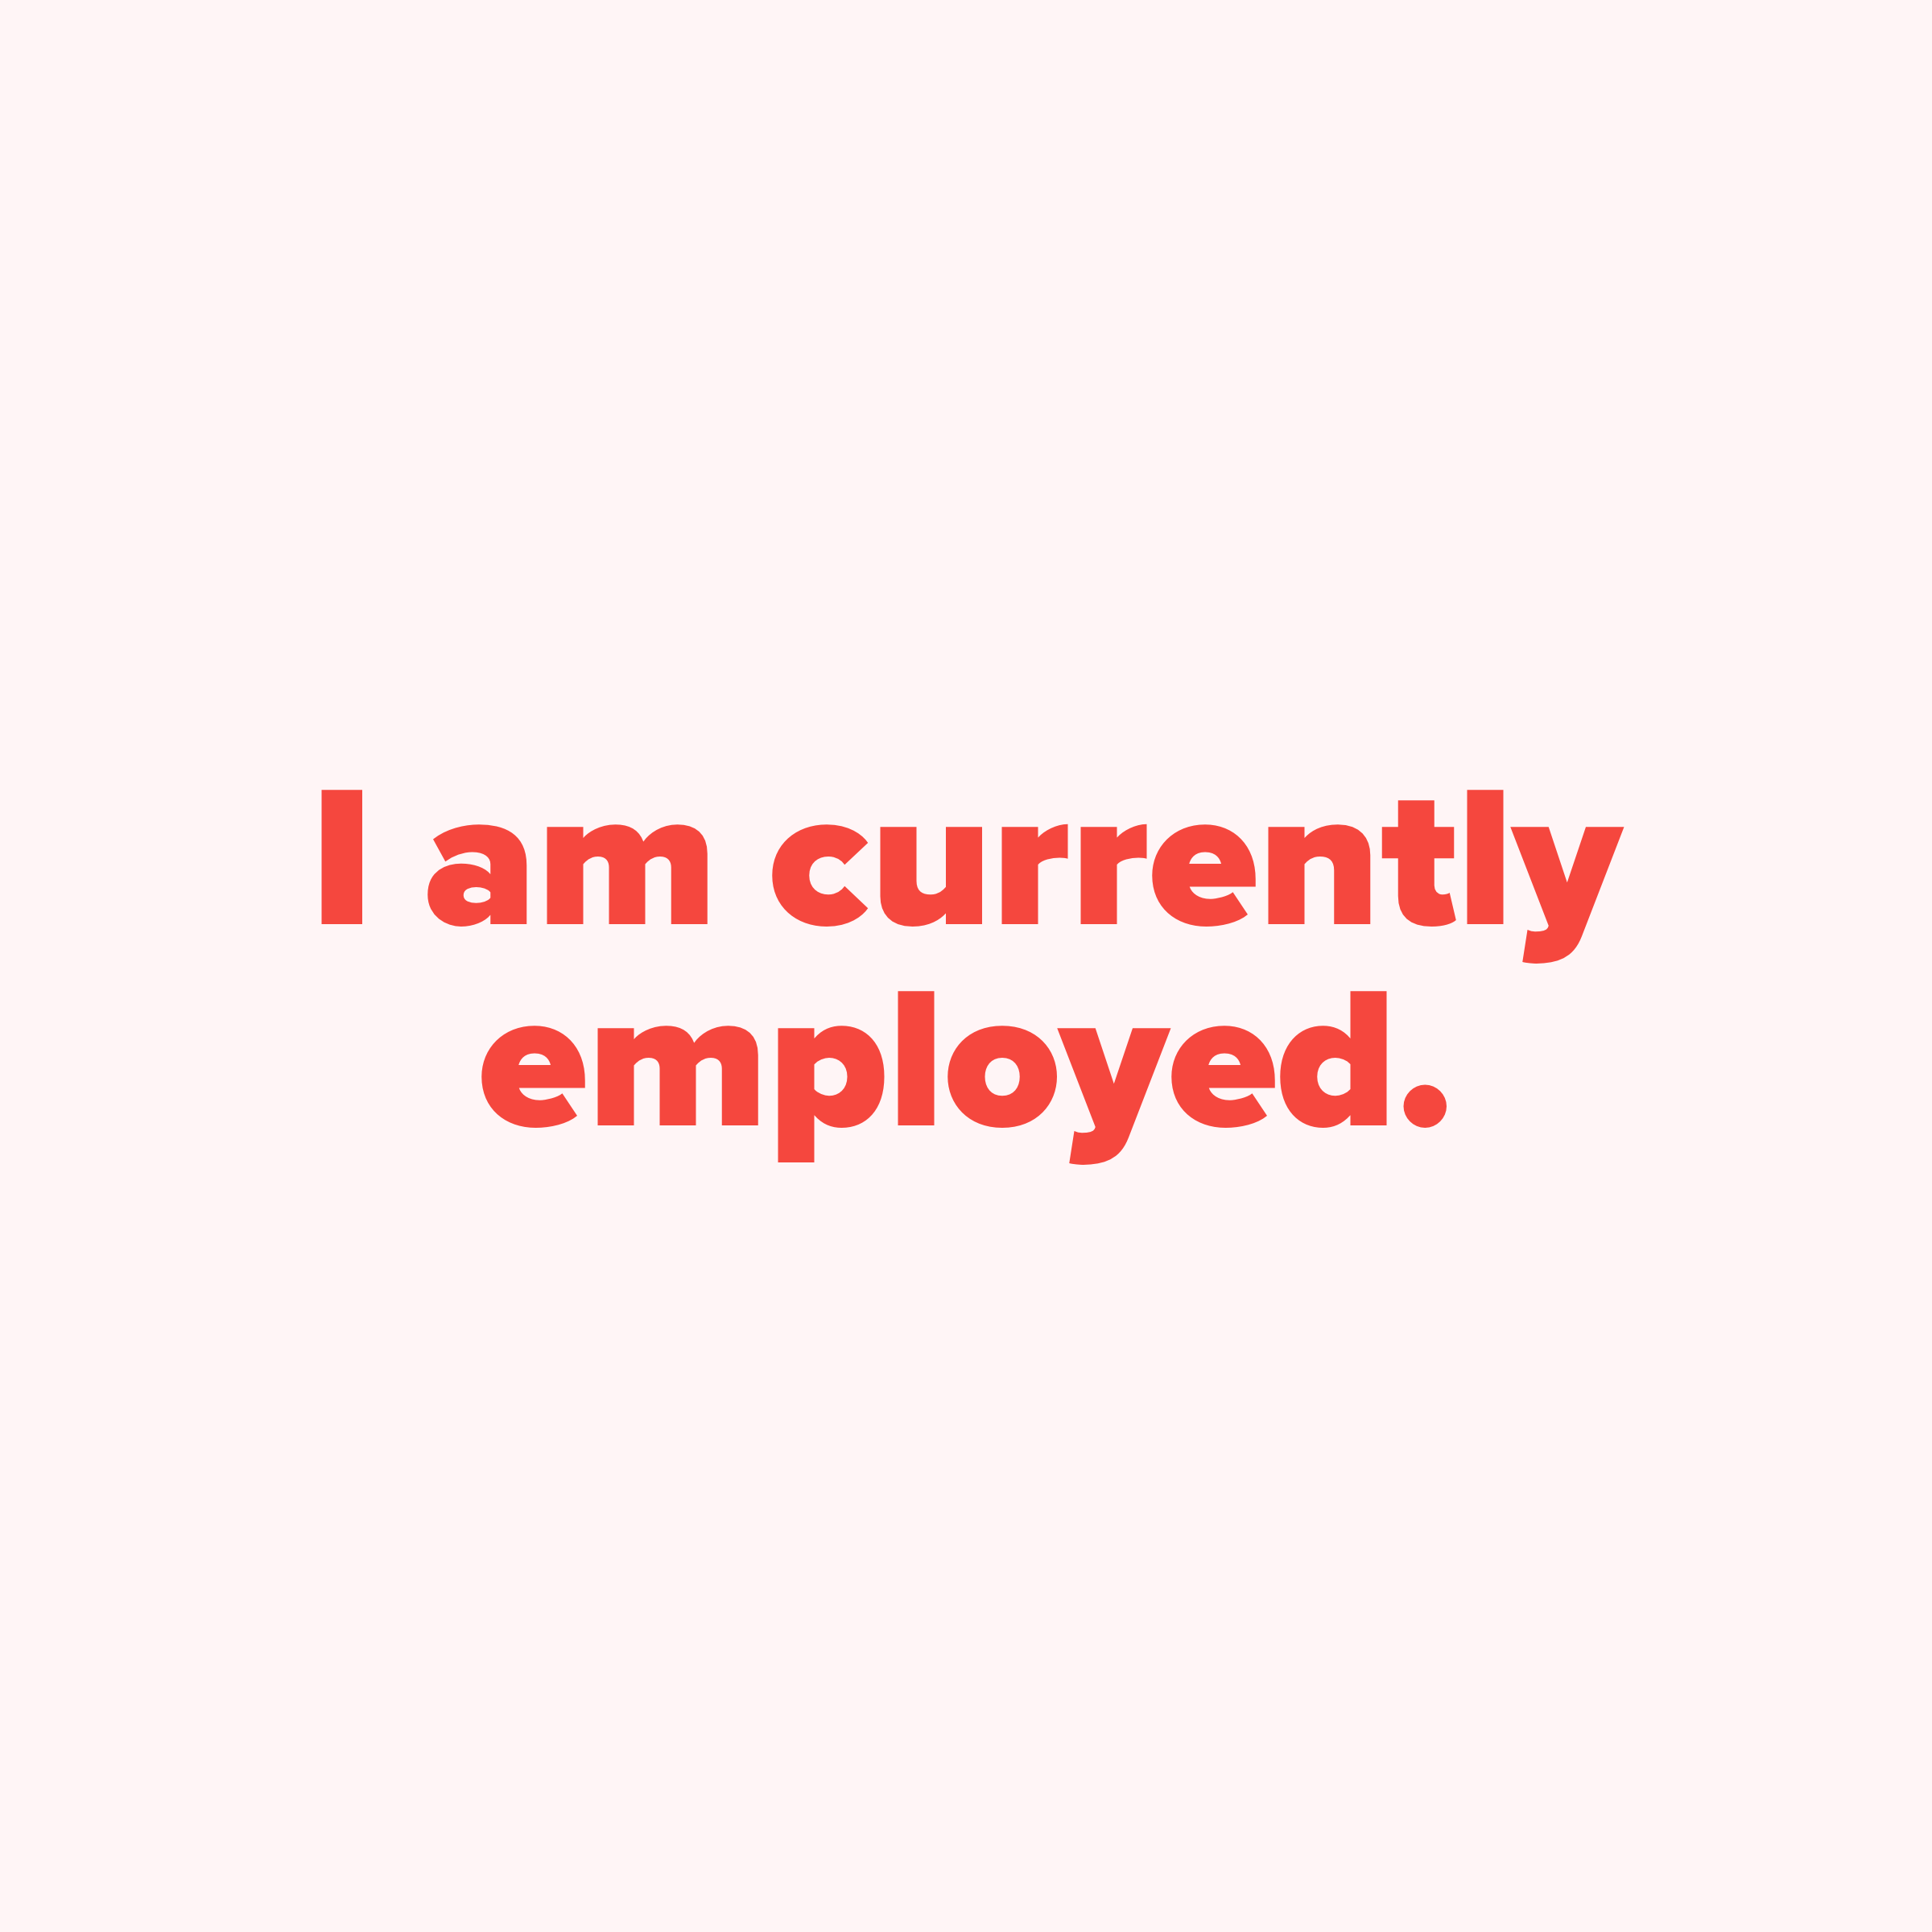 employed.png